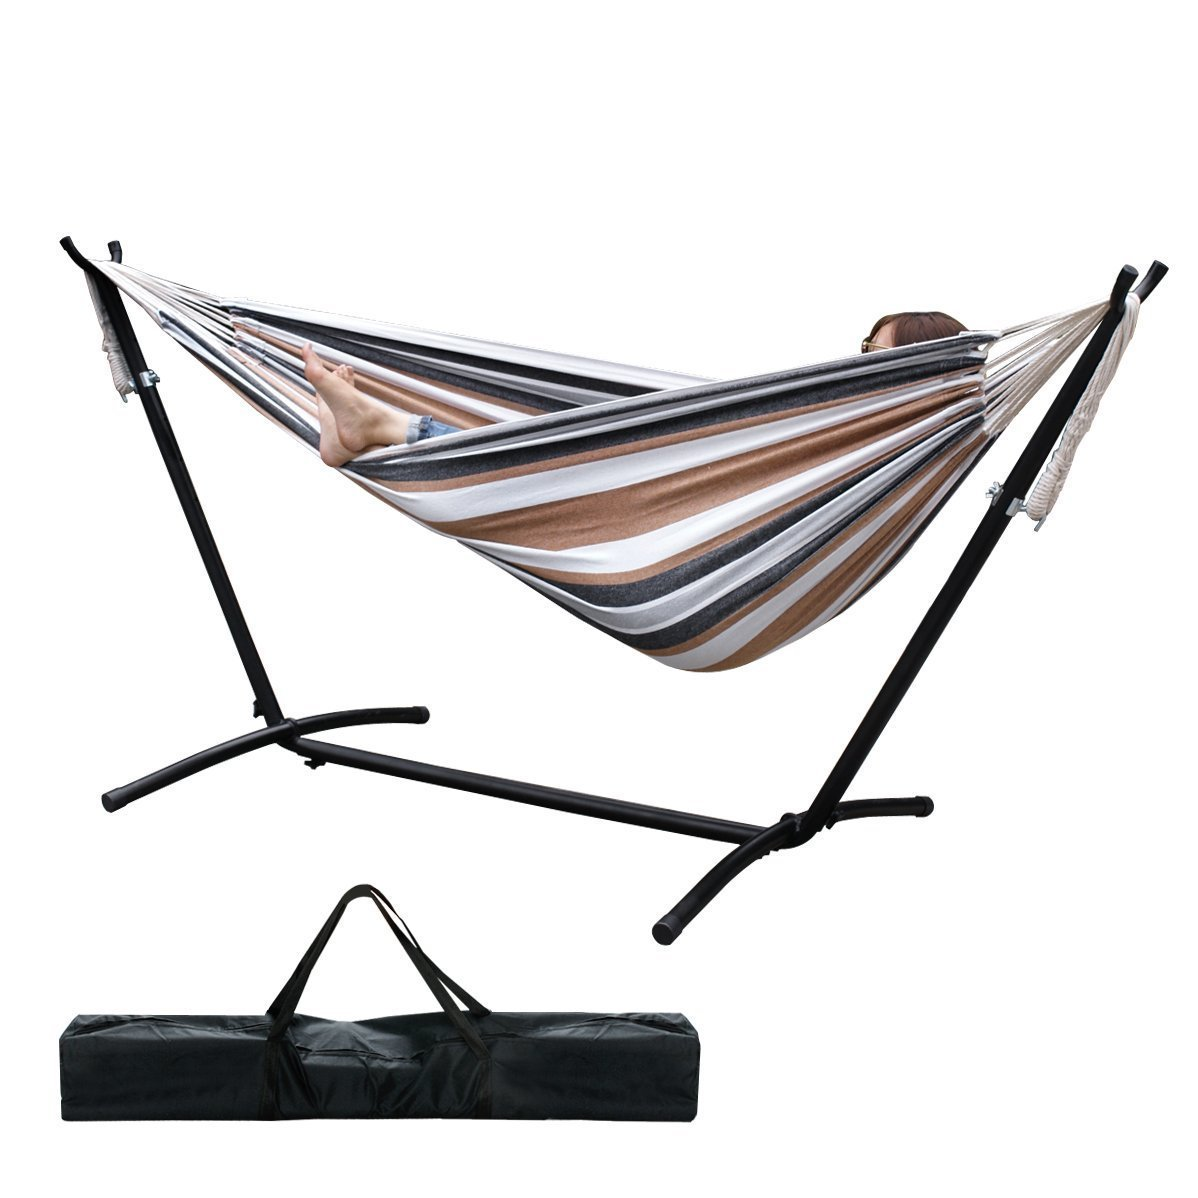 Medium image of amazon     zeny double hammock 9 u0027 with space saving steel stand includes portable carrying case  desert stripe    garden  u0026 outdoor